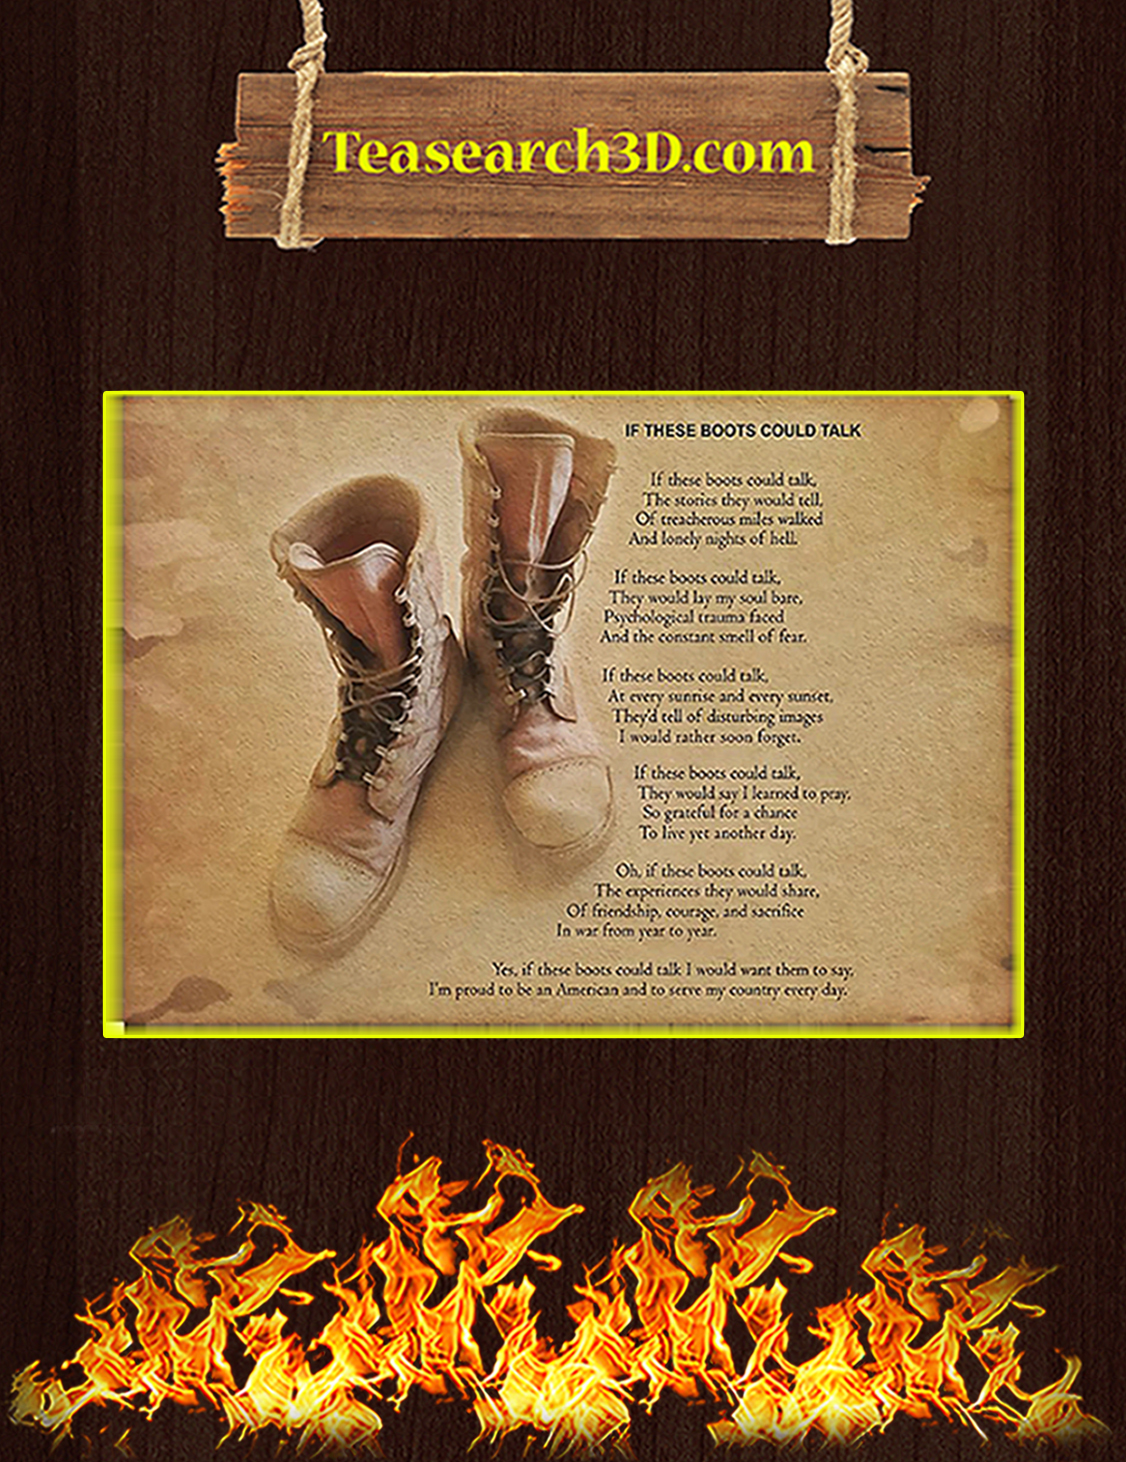 If these boots could talk poster A3